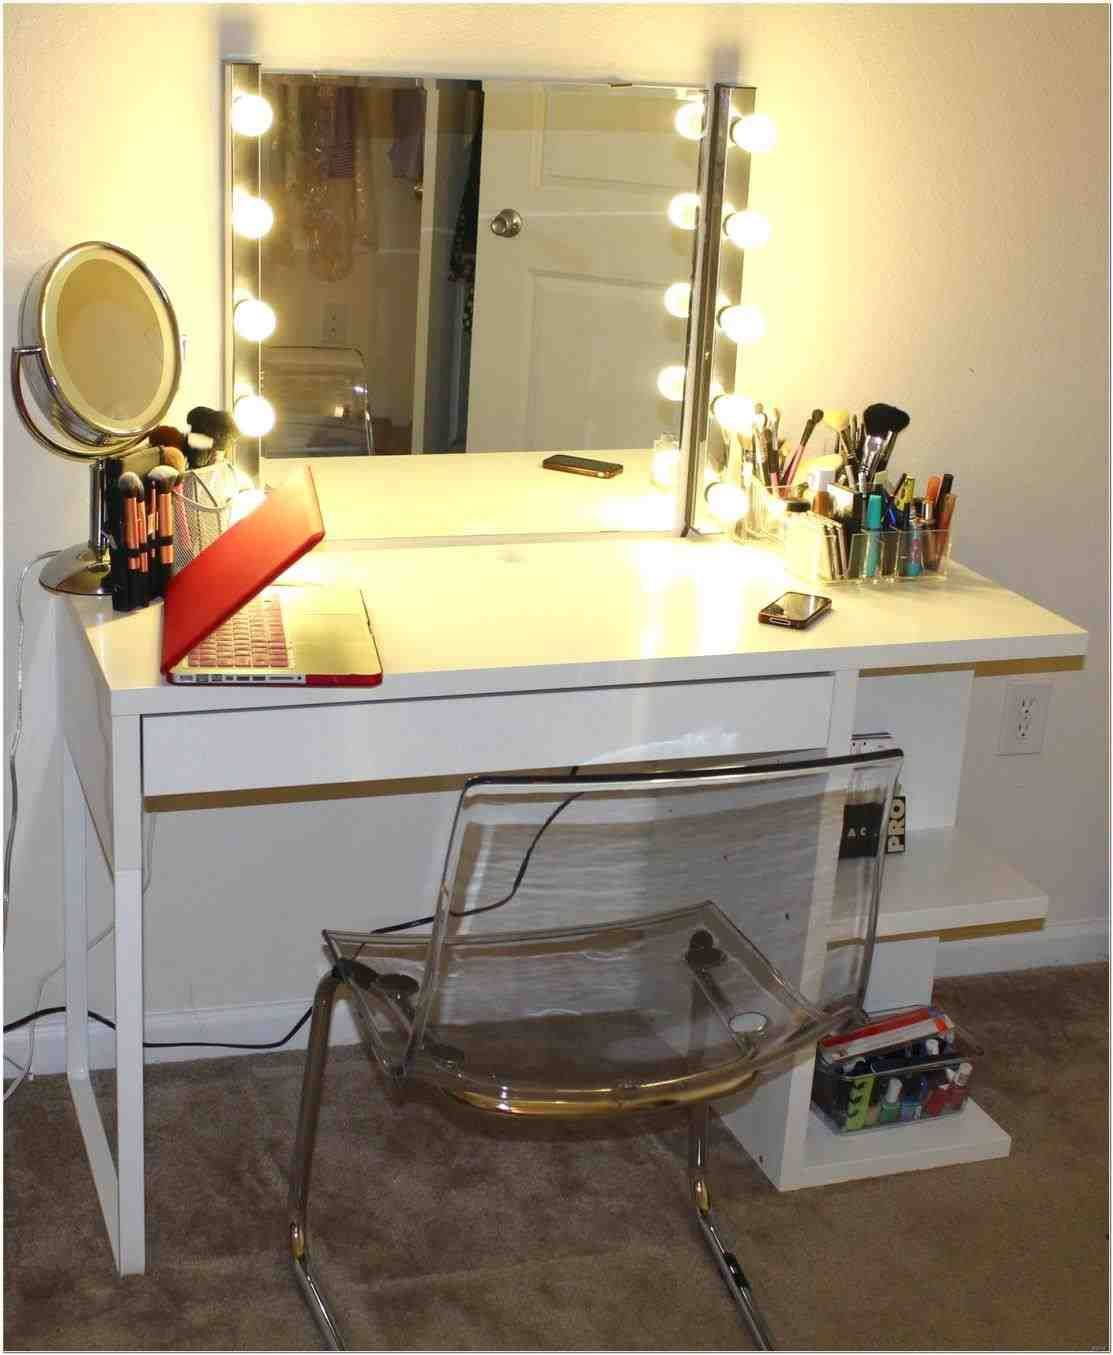 This vanity table tumblr - vanity desk with lights | corner makeup ...